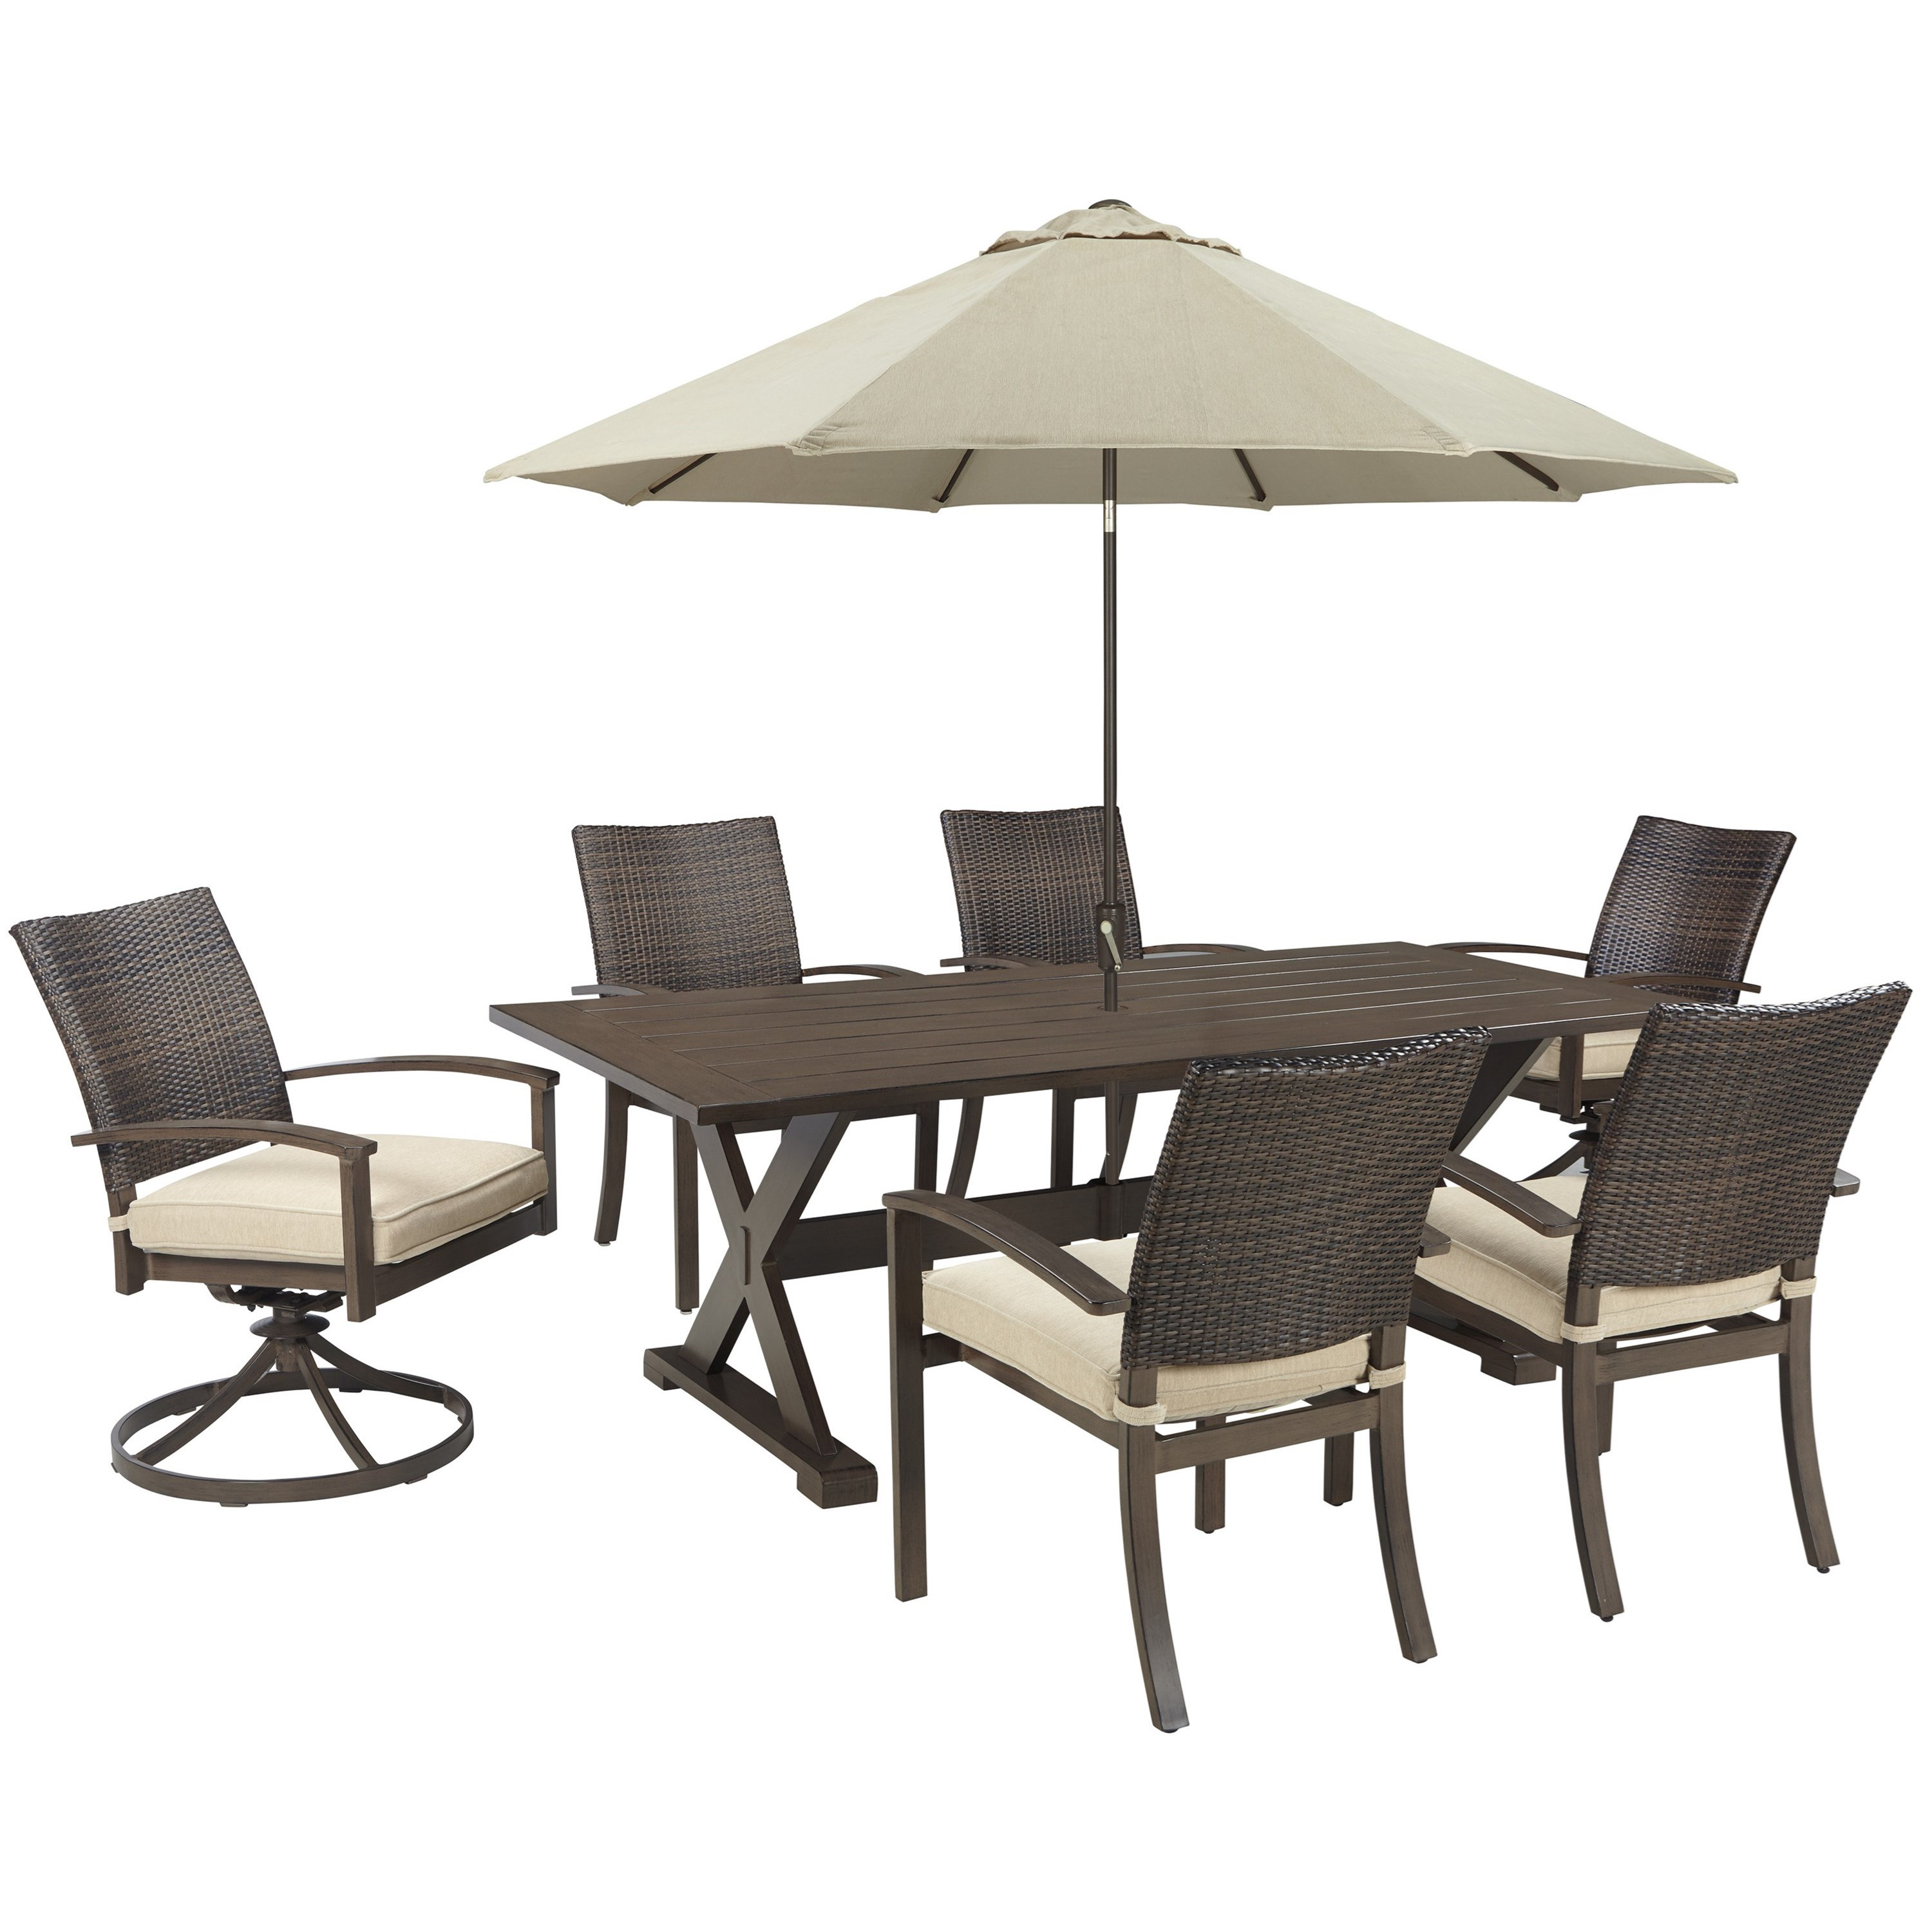 Signature design by ashley moresdale outdoor dining set for Outdoor dining